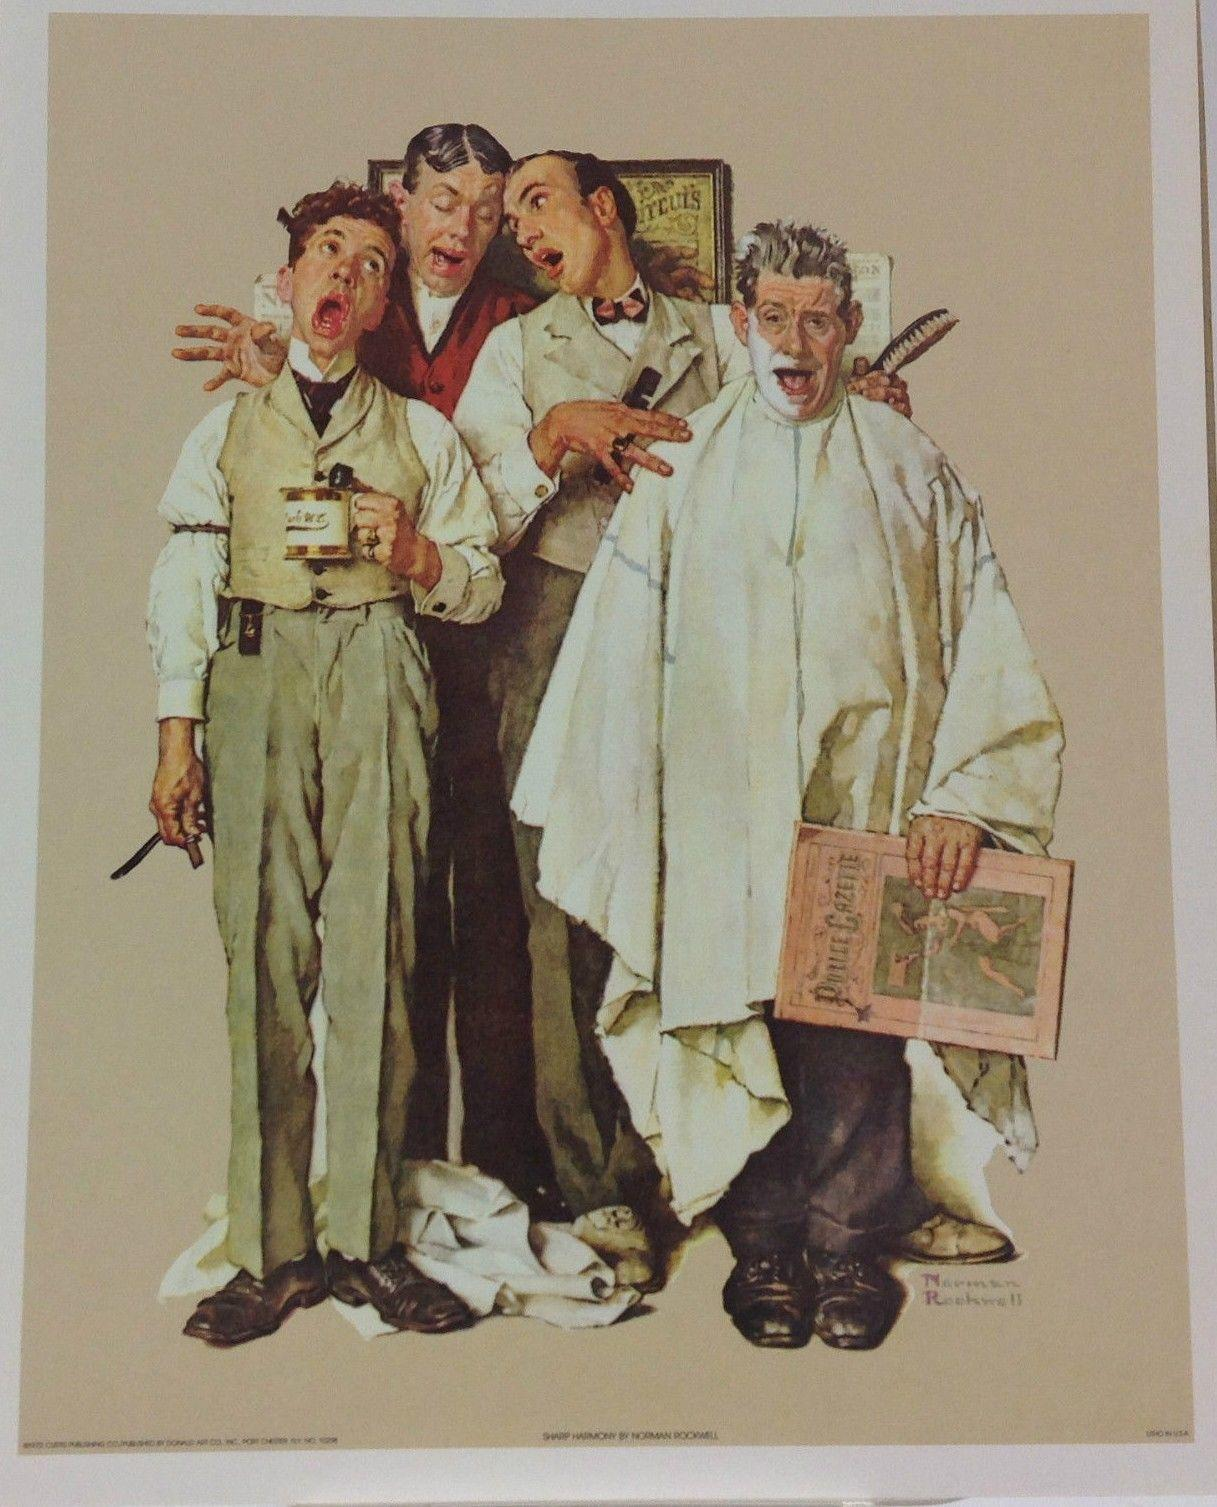 Caption: Norman Rockwell's Sharp Harmony, Credit: Ebay